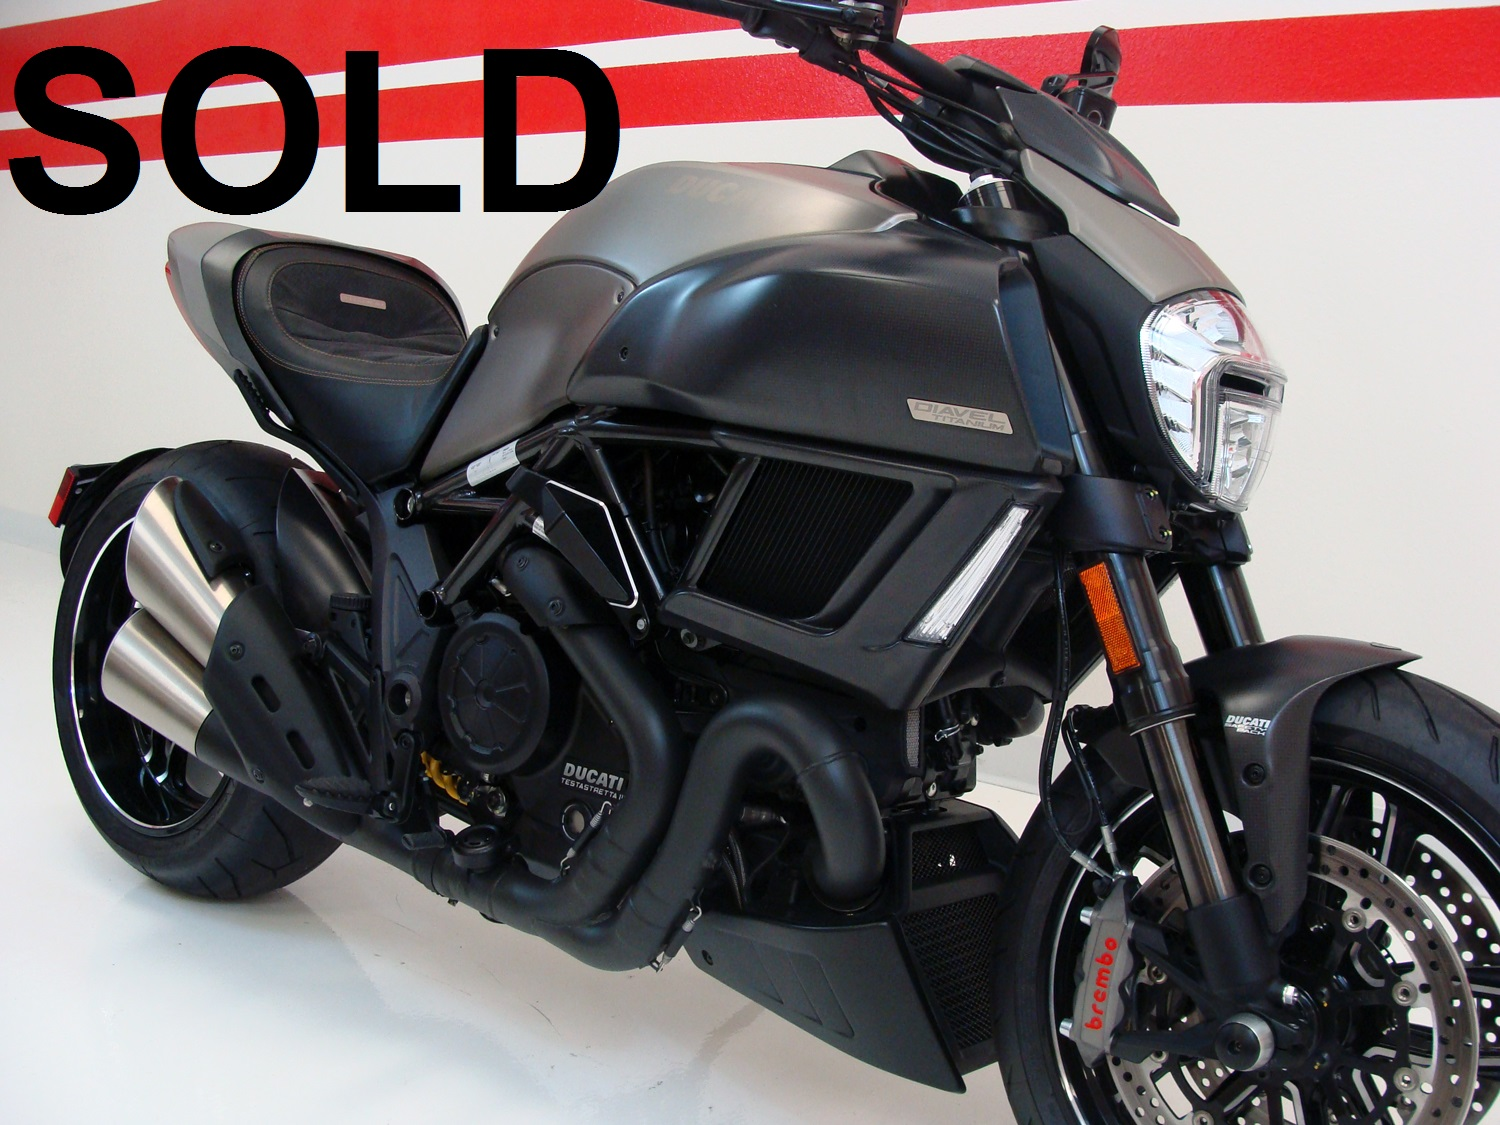 Ducati Diavel Titanium LIMITED EDITION - No 245 of 500 made